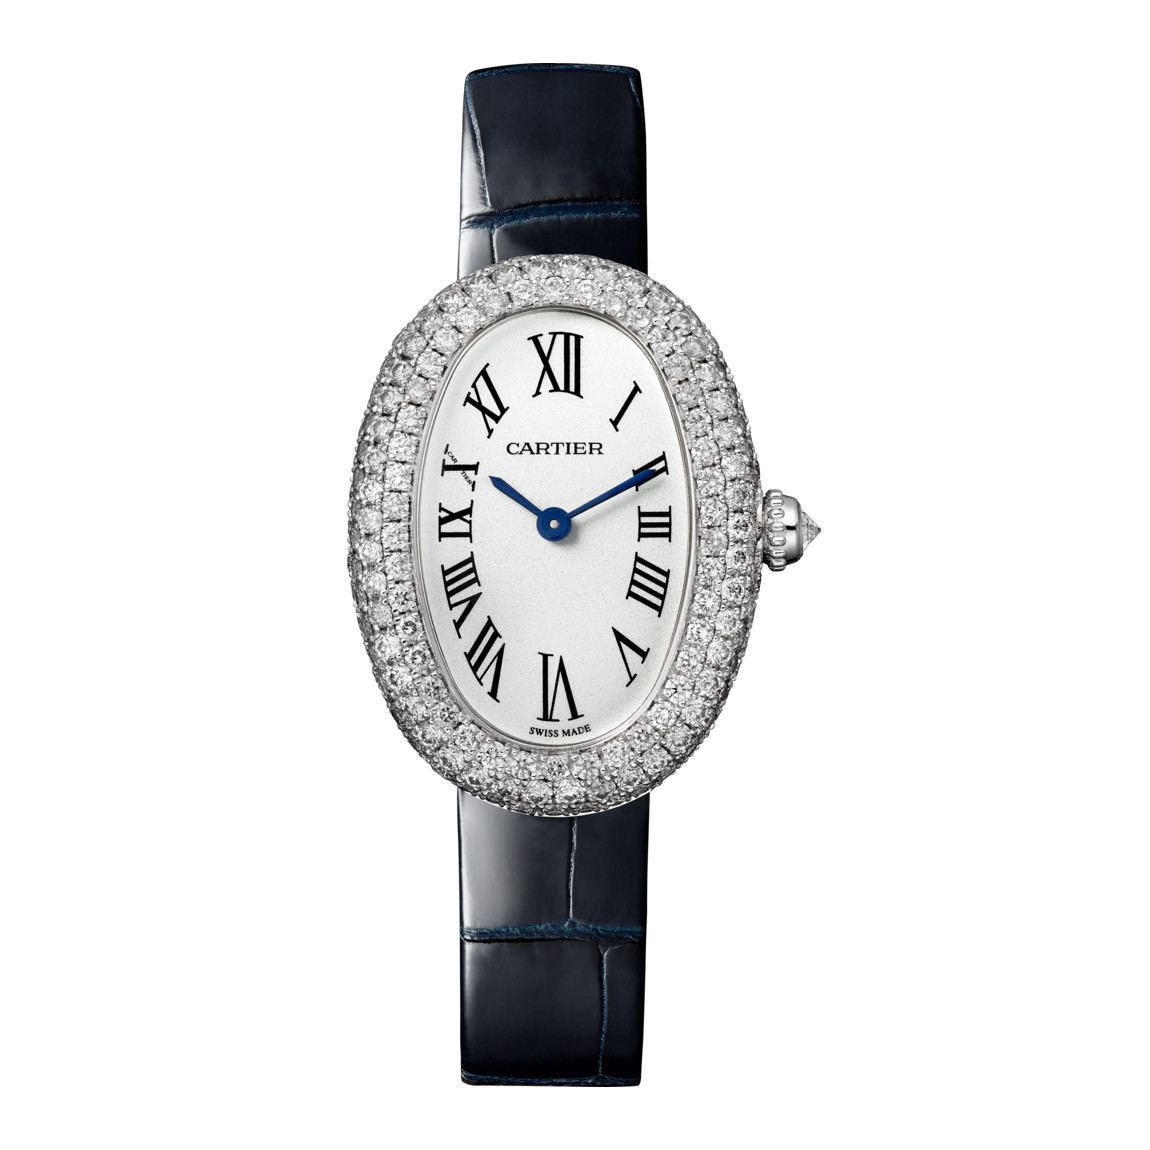 Baignoire 1920 Small White Gold & Diamonds (WJBA0015)